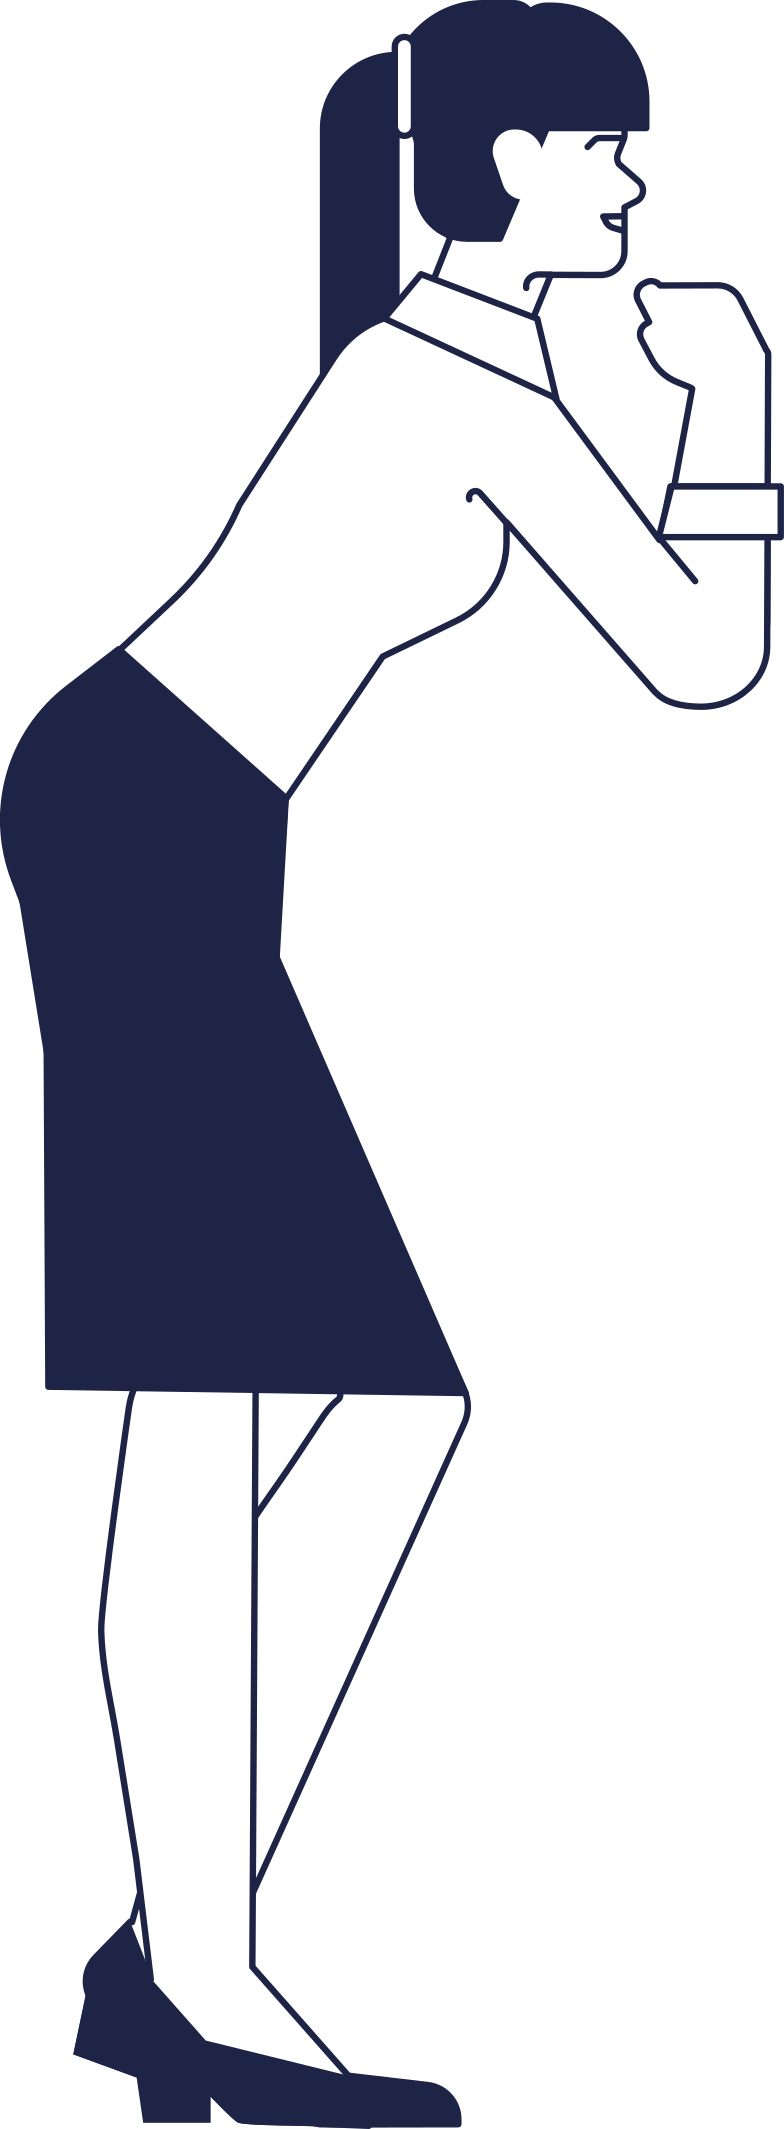 woman at standing cafe Clipart illustration in PNG, SVG